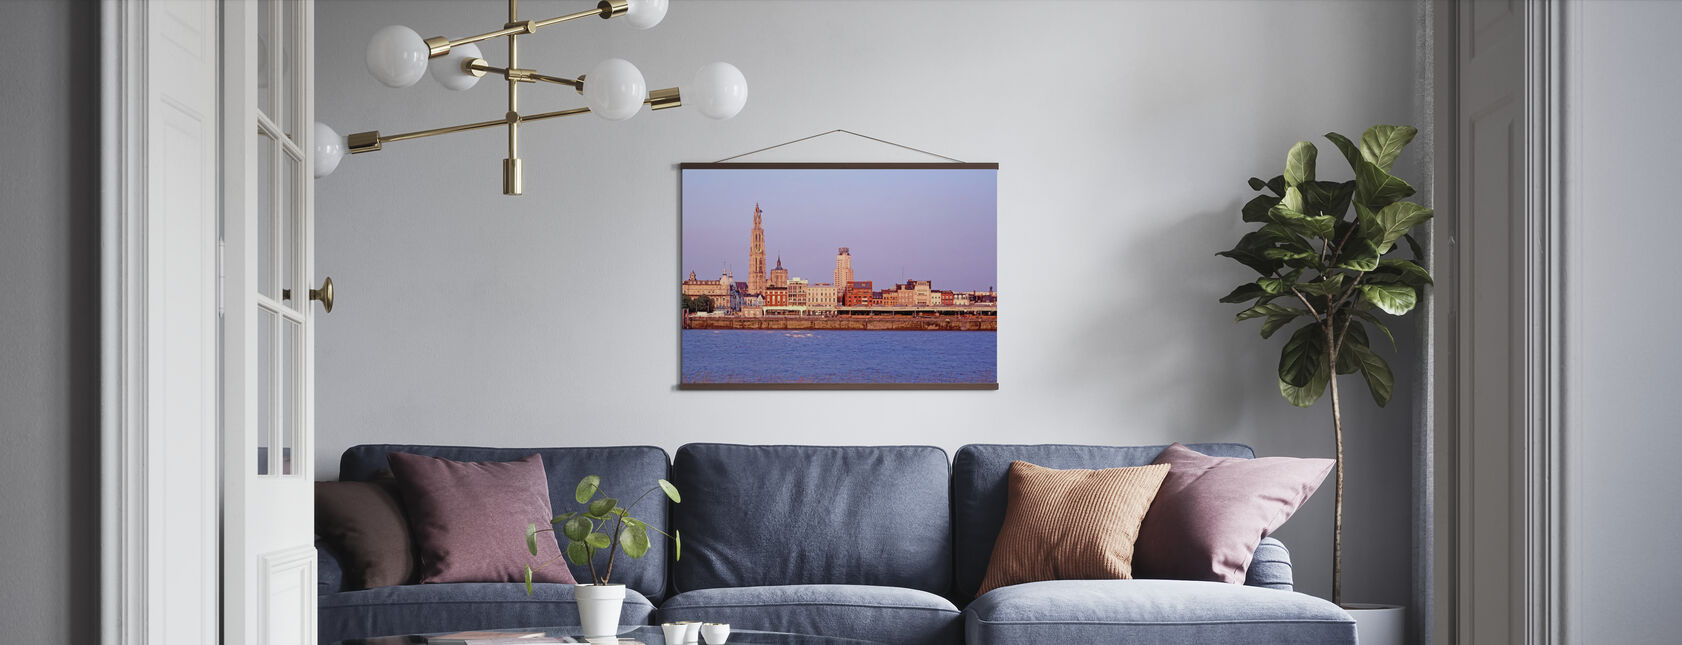 Antwerp Skyline at Dusk - Poster - Living Room